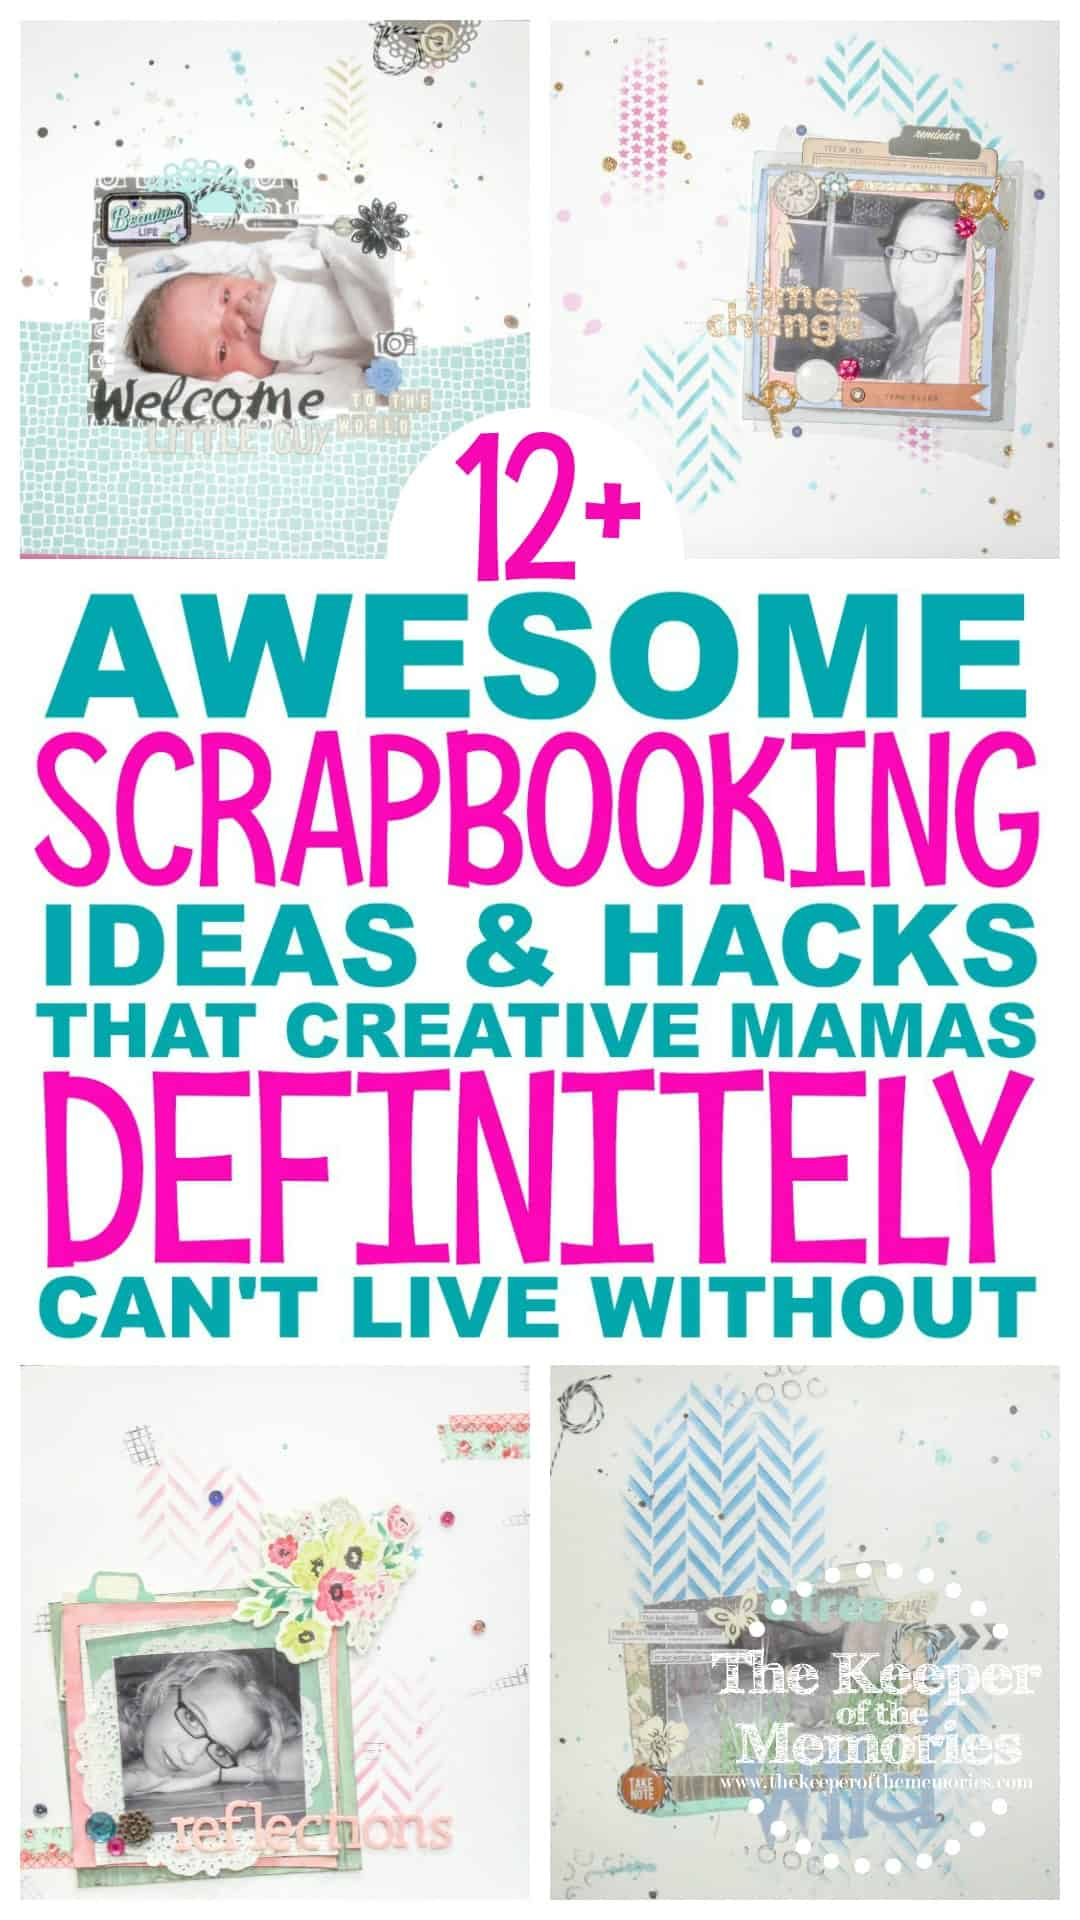 12 Awesome Scrapbooking Ideas Hacks For Creative Mamas